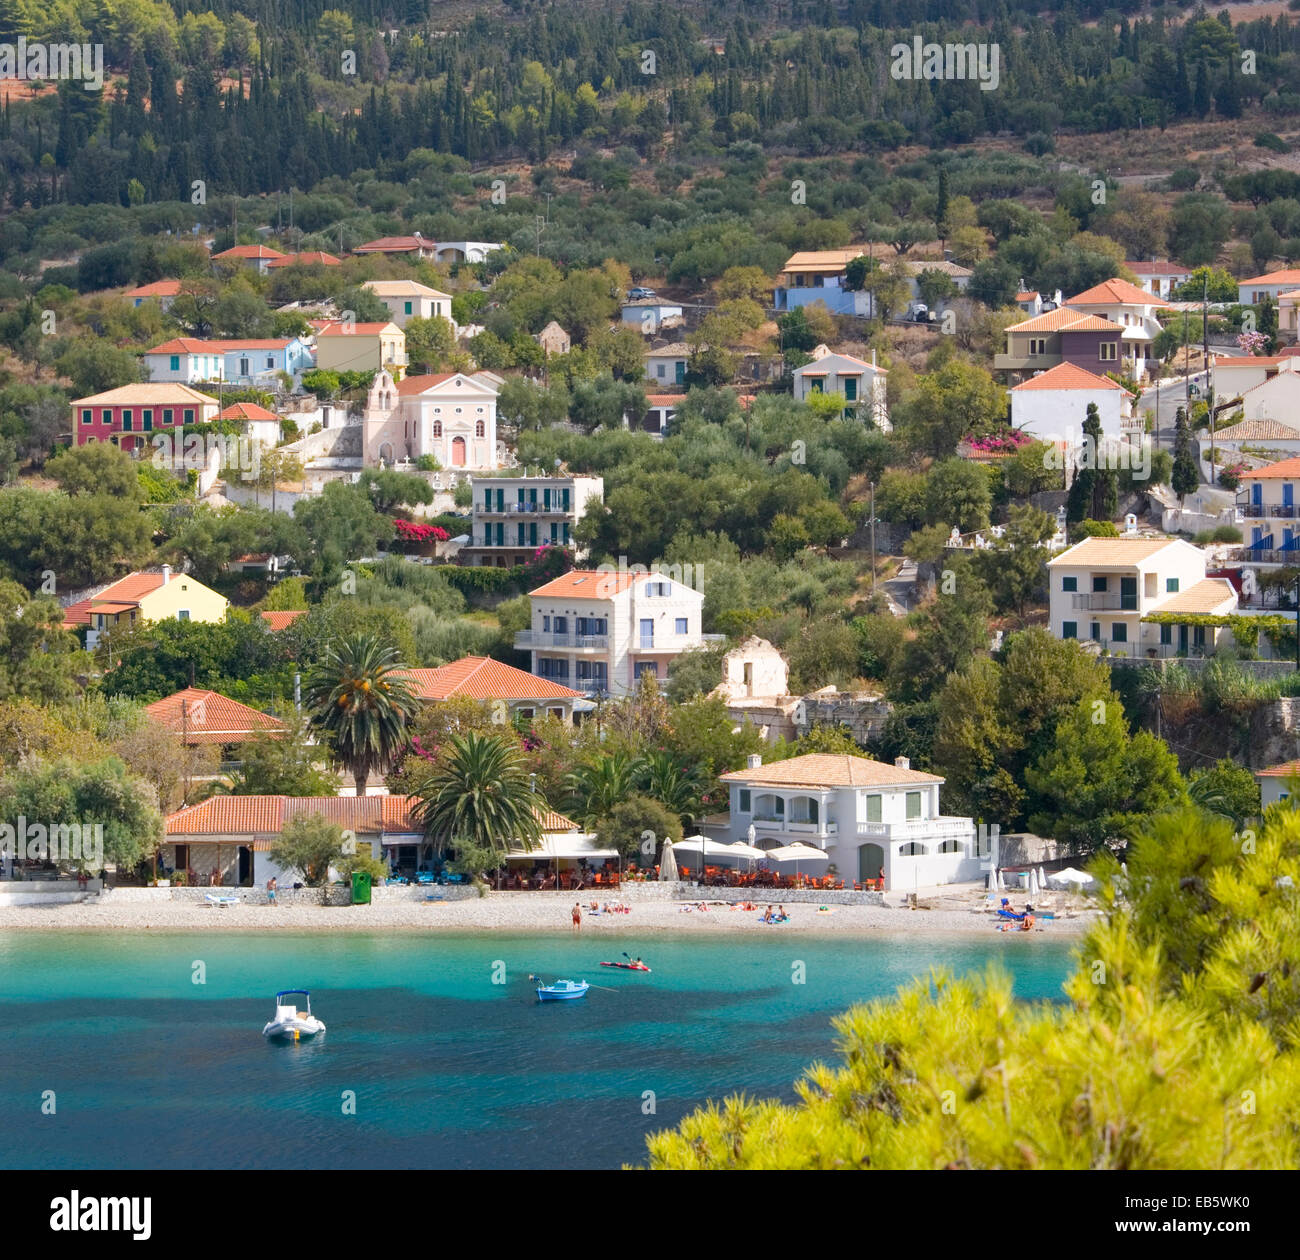 Asos, Kefalonia, Ionian Islands, Greece. View across picturesque harbour to the village and beach. - Stock Image